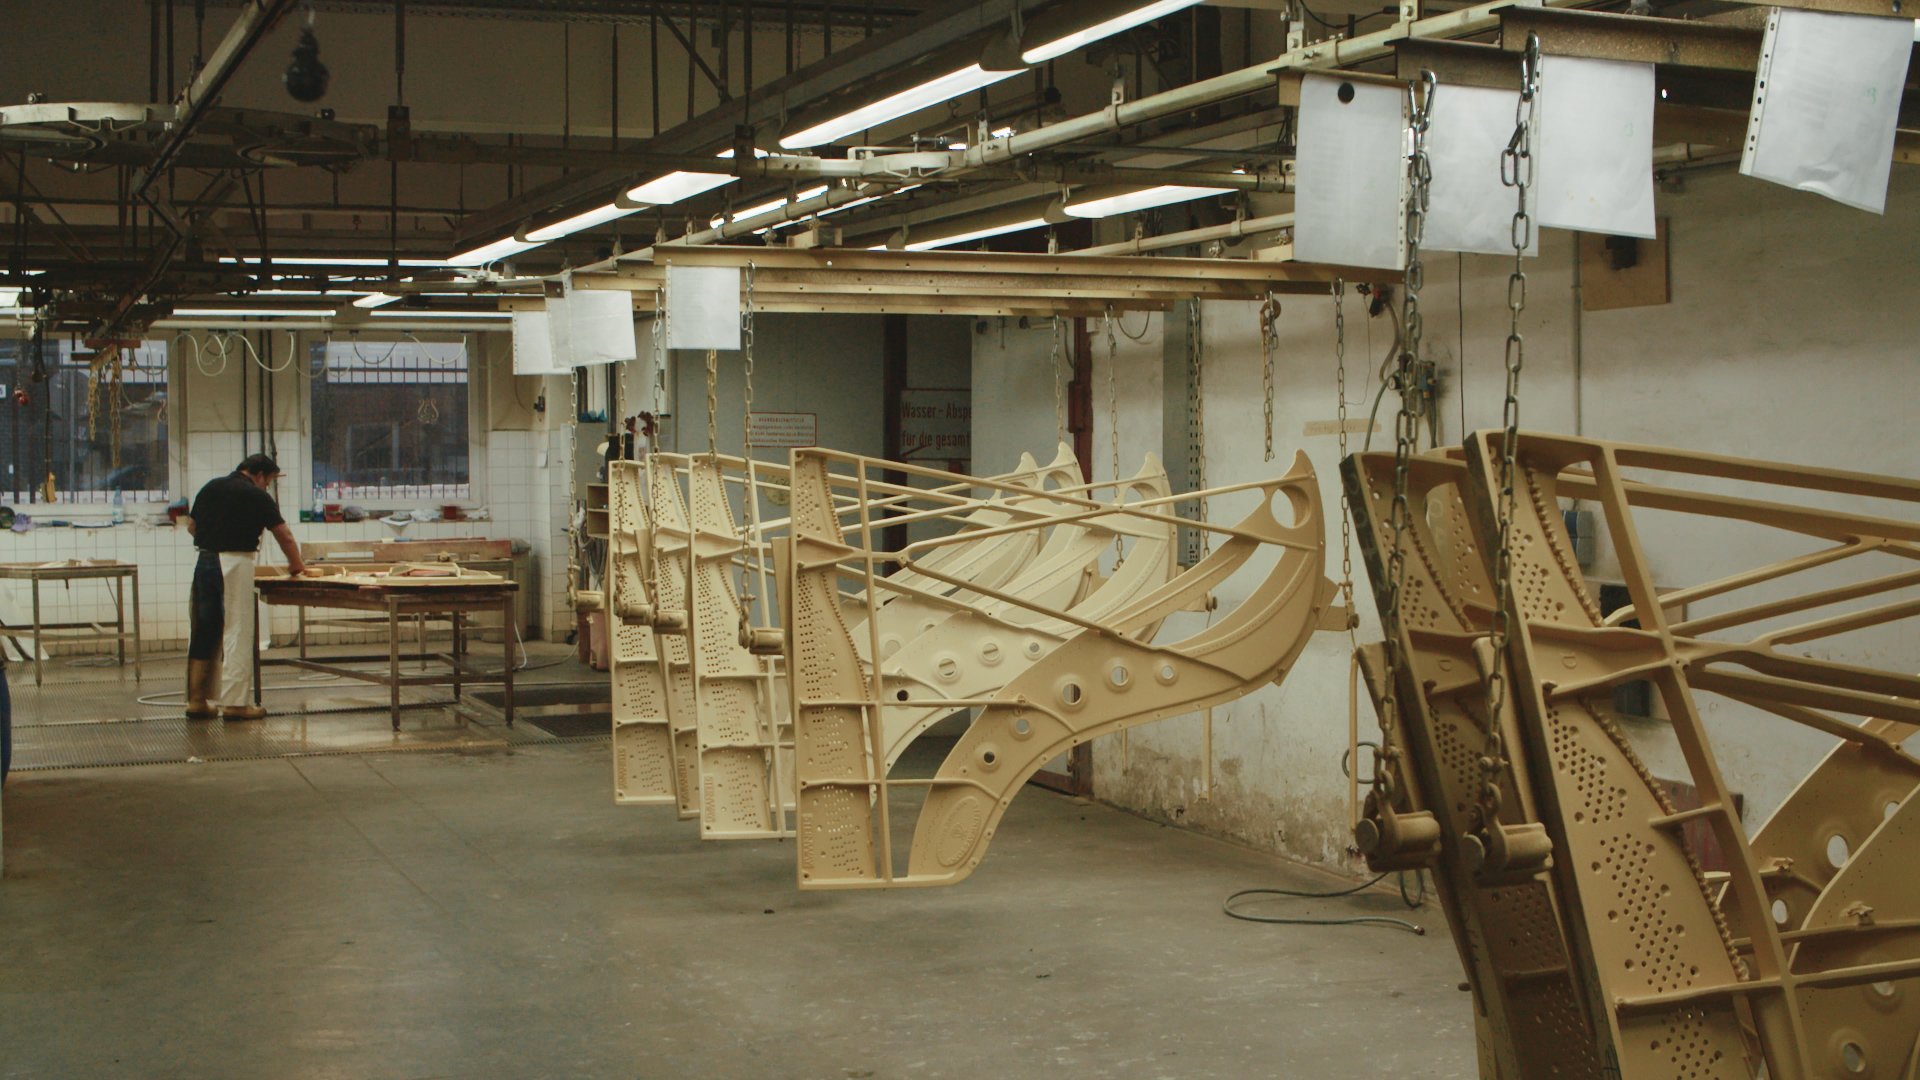 Steinway pianos being built - image by STROMA Films